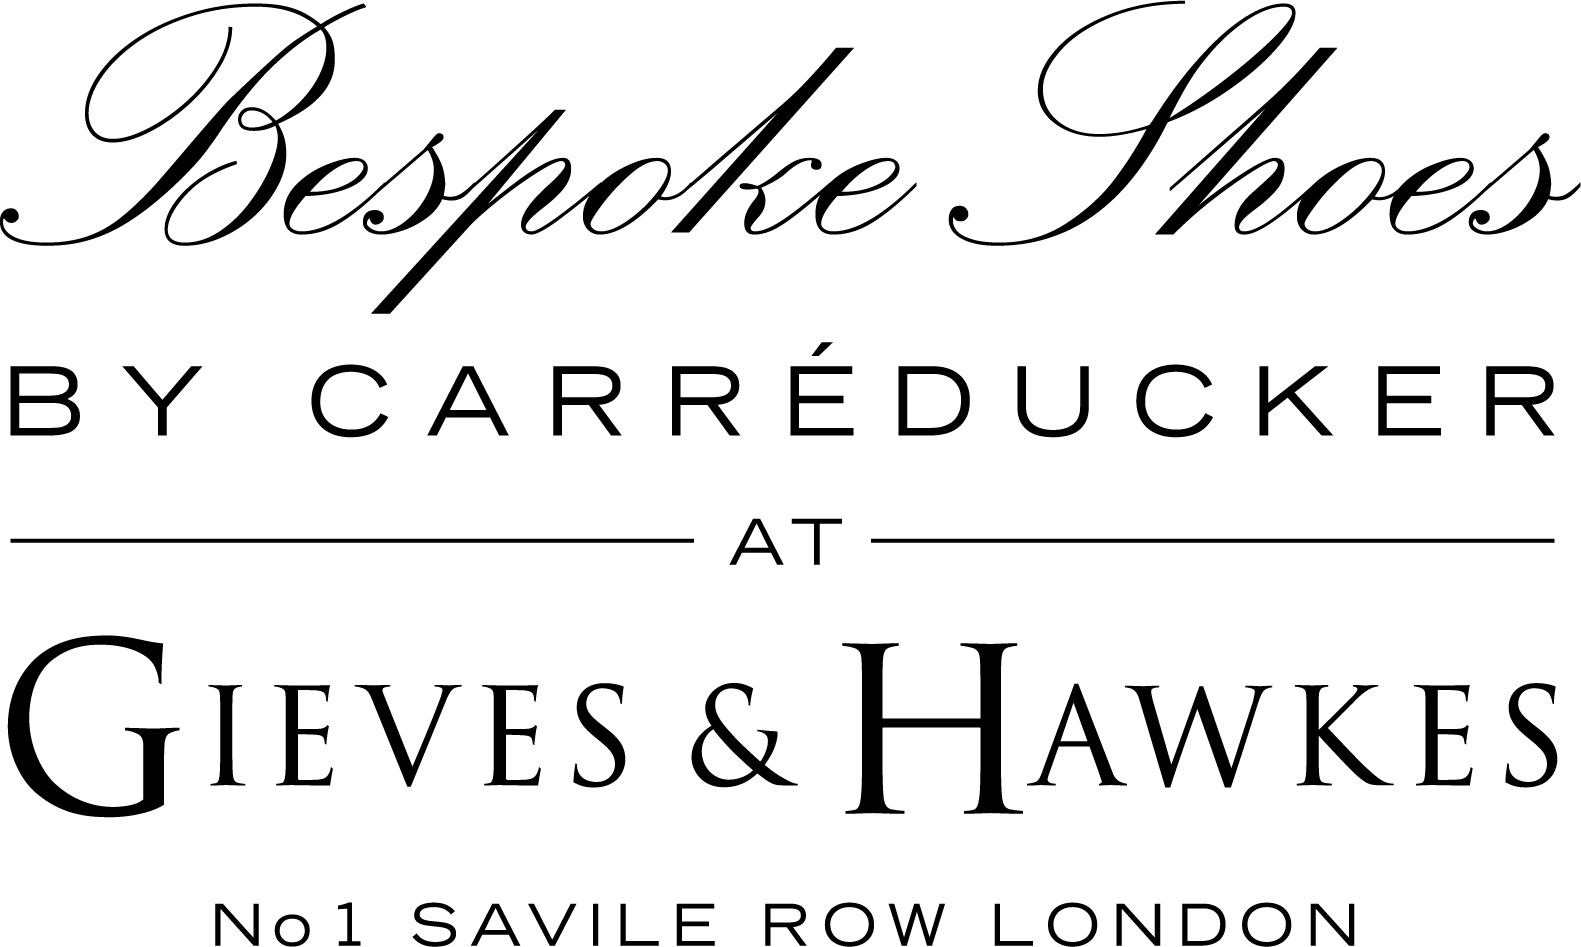 Carreducker Bespoke Shoes at Gieves & Hawkes